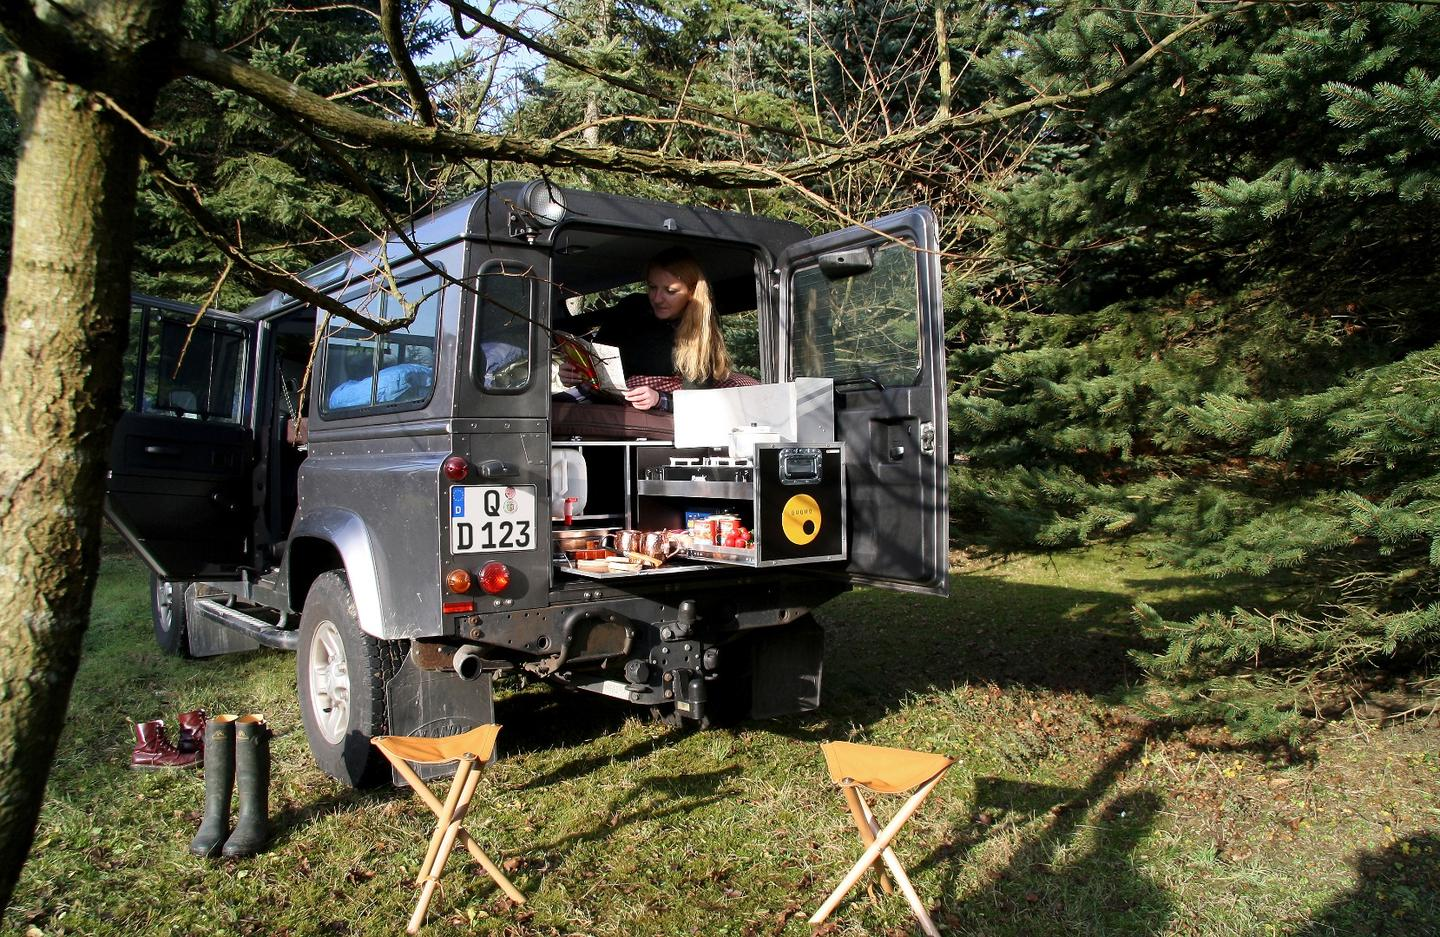 With the D-Box, the Land Rover Defenderis ready for adventures that last for days